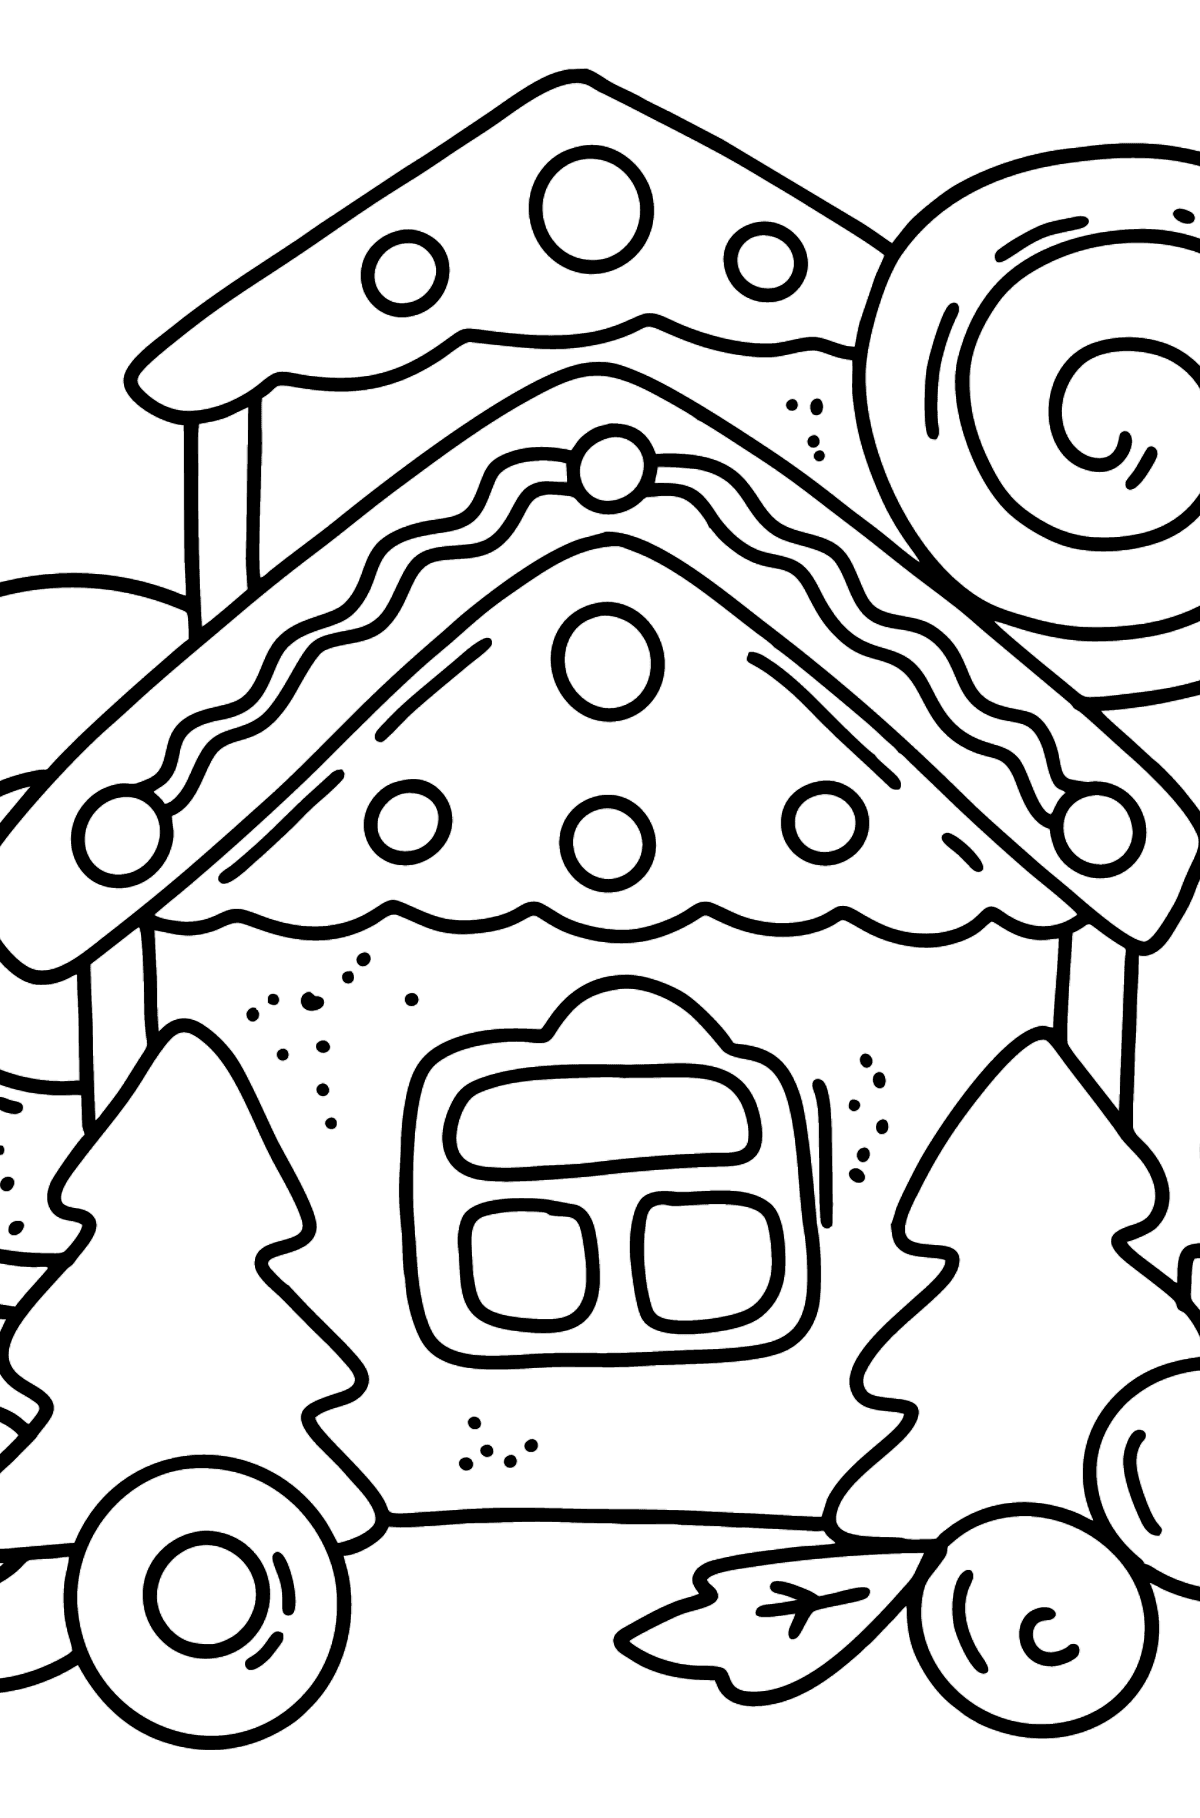 Gingerbread House with Lollipop and Pretzels coloring page - Coloring Pages for Kids